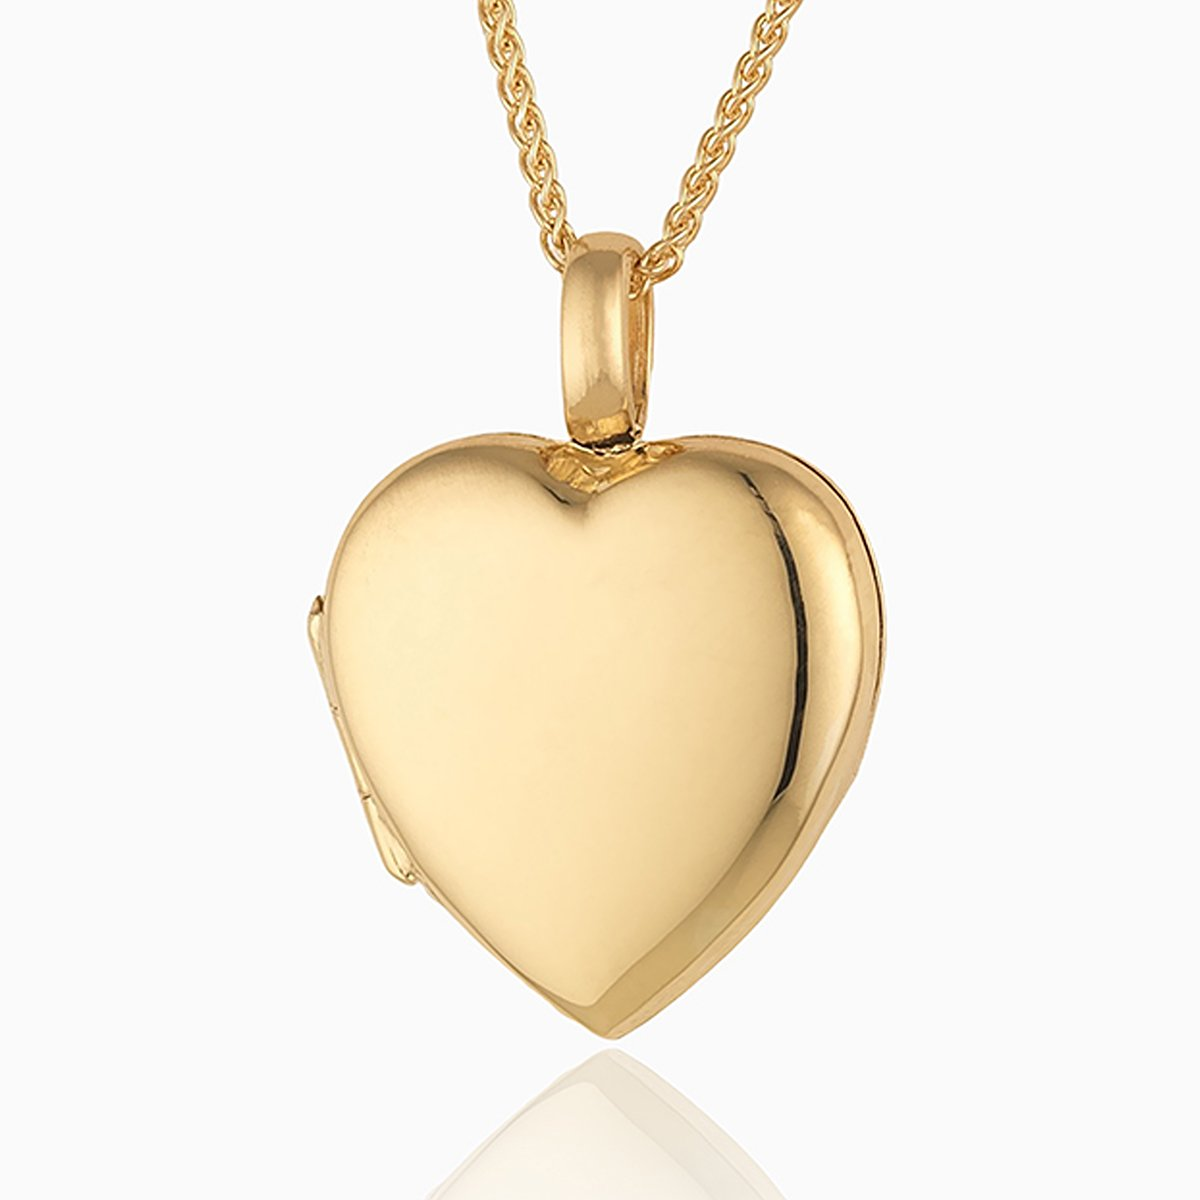 Product title: Handmade 18 ct Gold Heart, product type: Locket